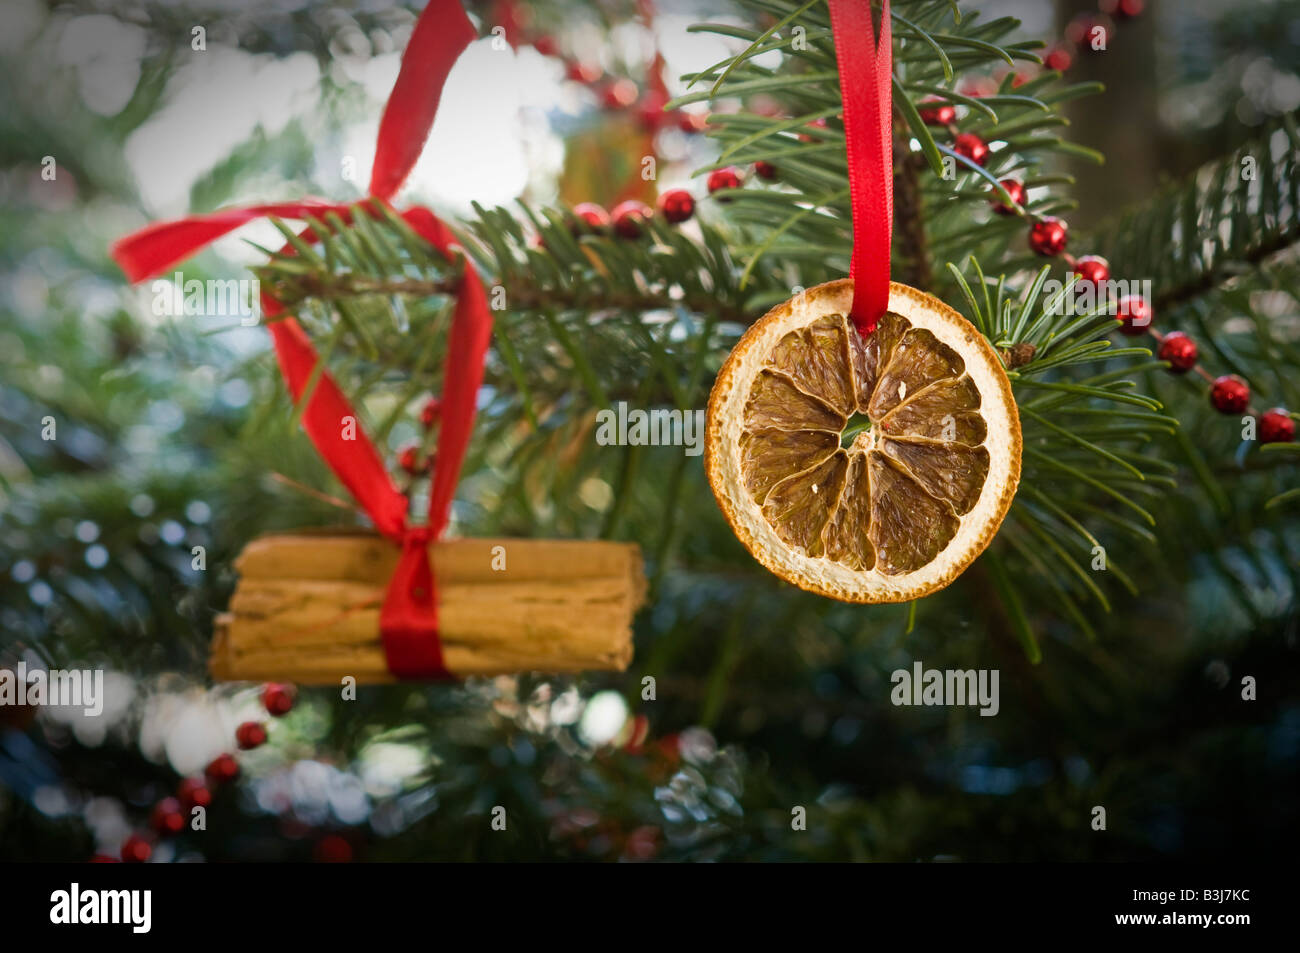 Traditional Christmas Tree Decoration Comprising Dried Orange Slices